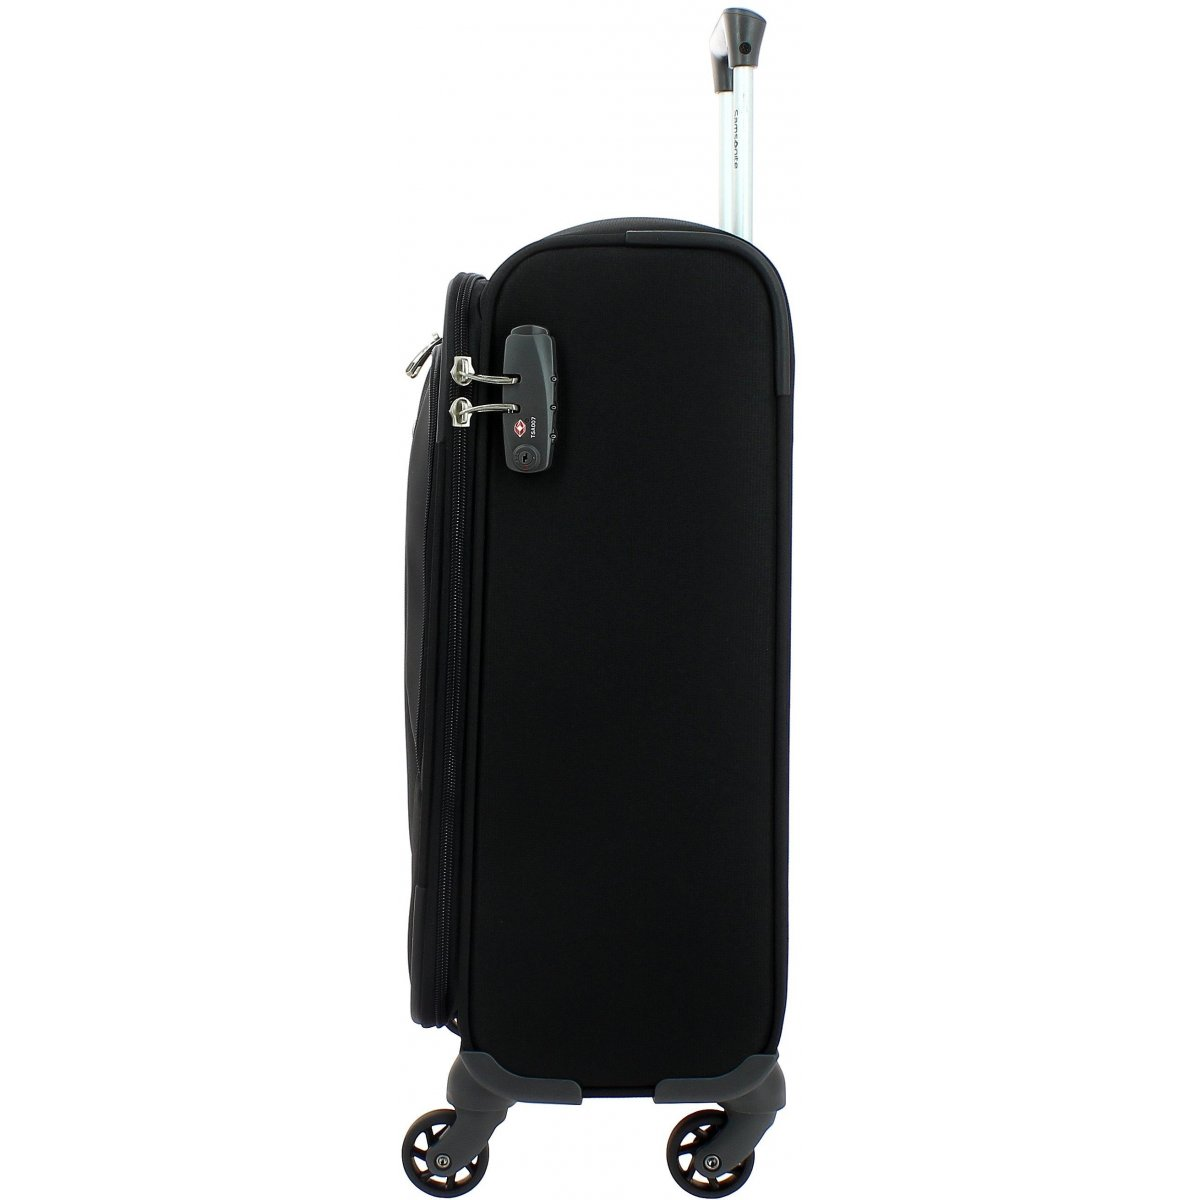 valise cabine samsonite ncs arnavon spinners ncsarnavon00 couleur principale noir solde. Black Bedroom Furniture Sets. Home Design Ideas